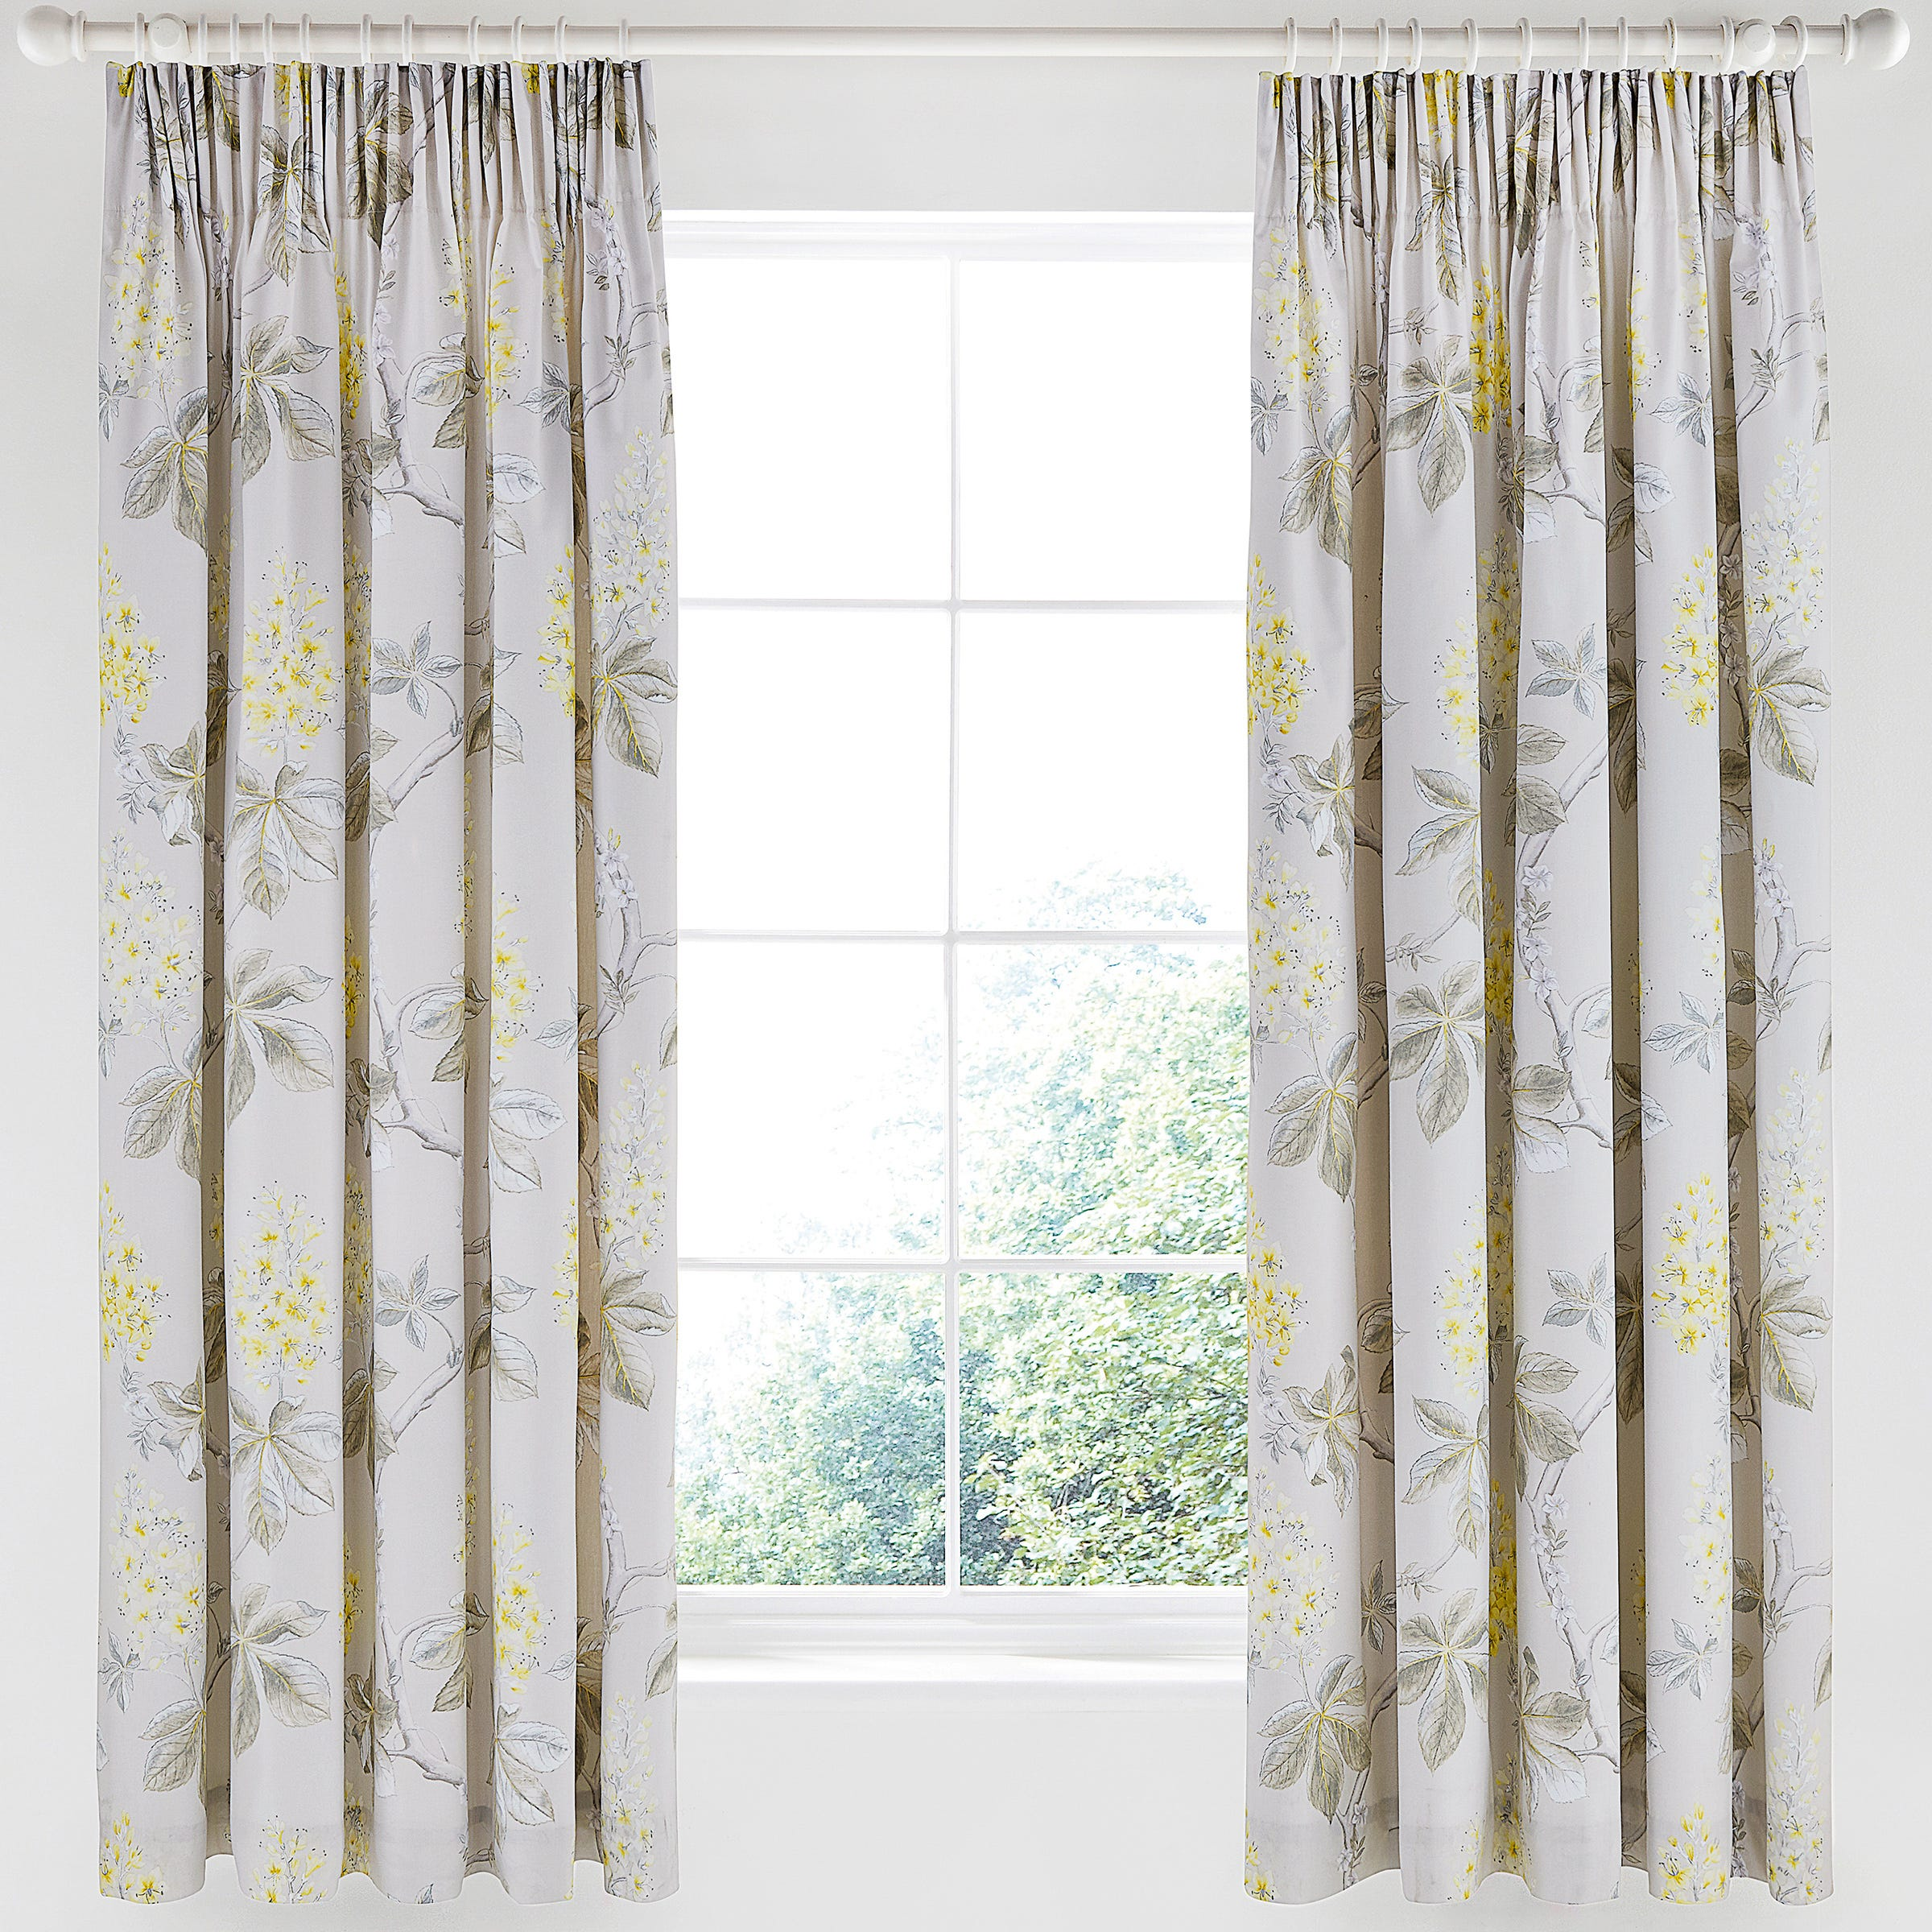 Sanderson Bedding Chestnut Tree Lined Curtains Silver